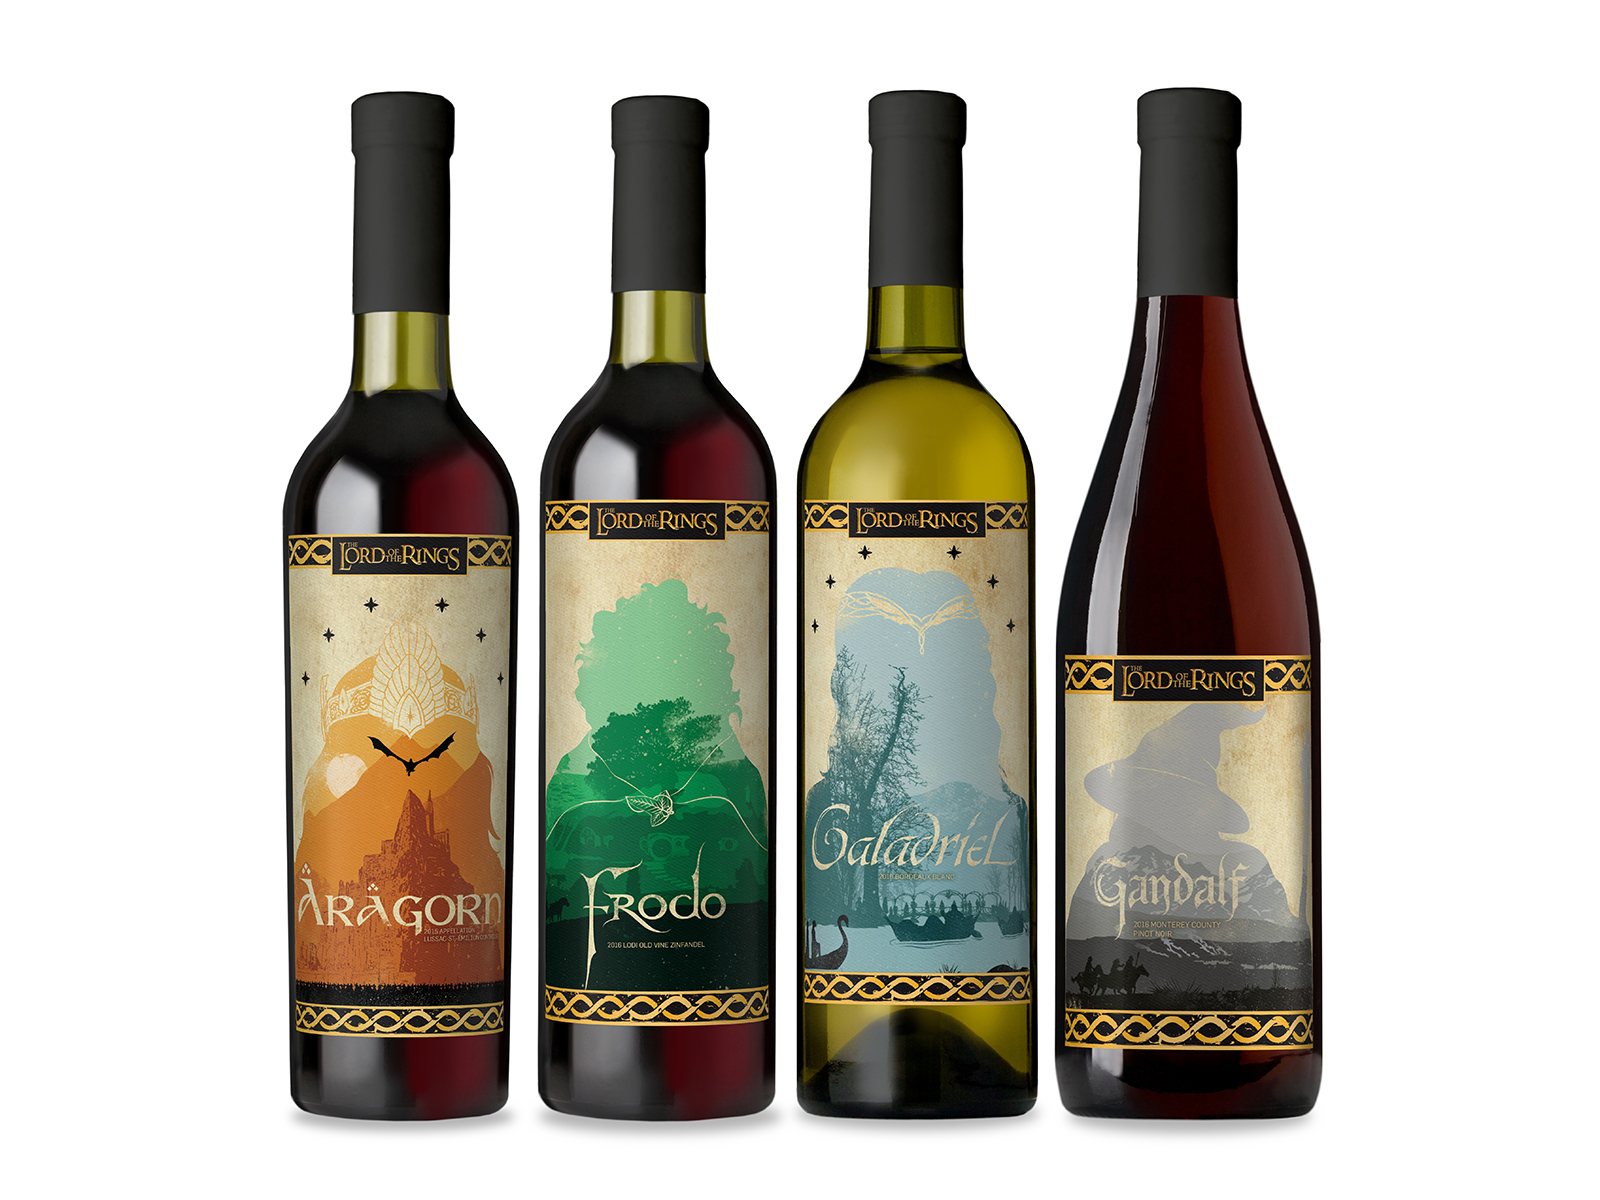 lord of the rings wine bottles by lot18 wine